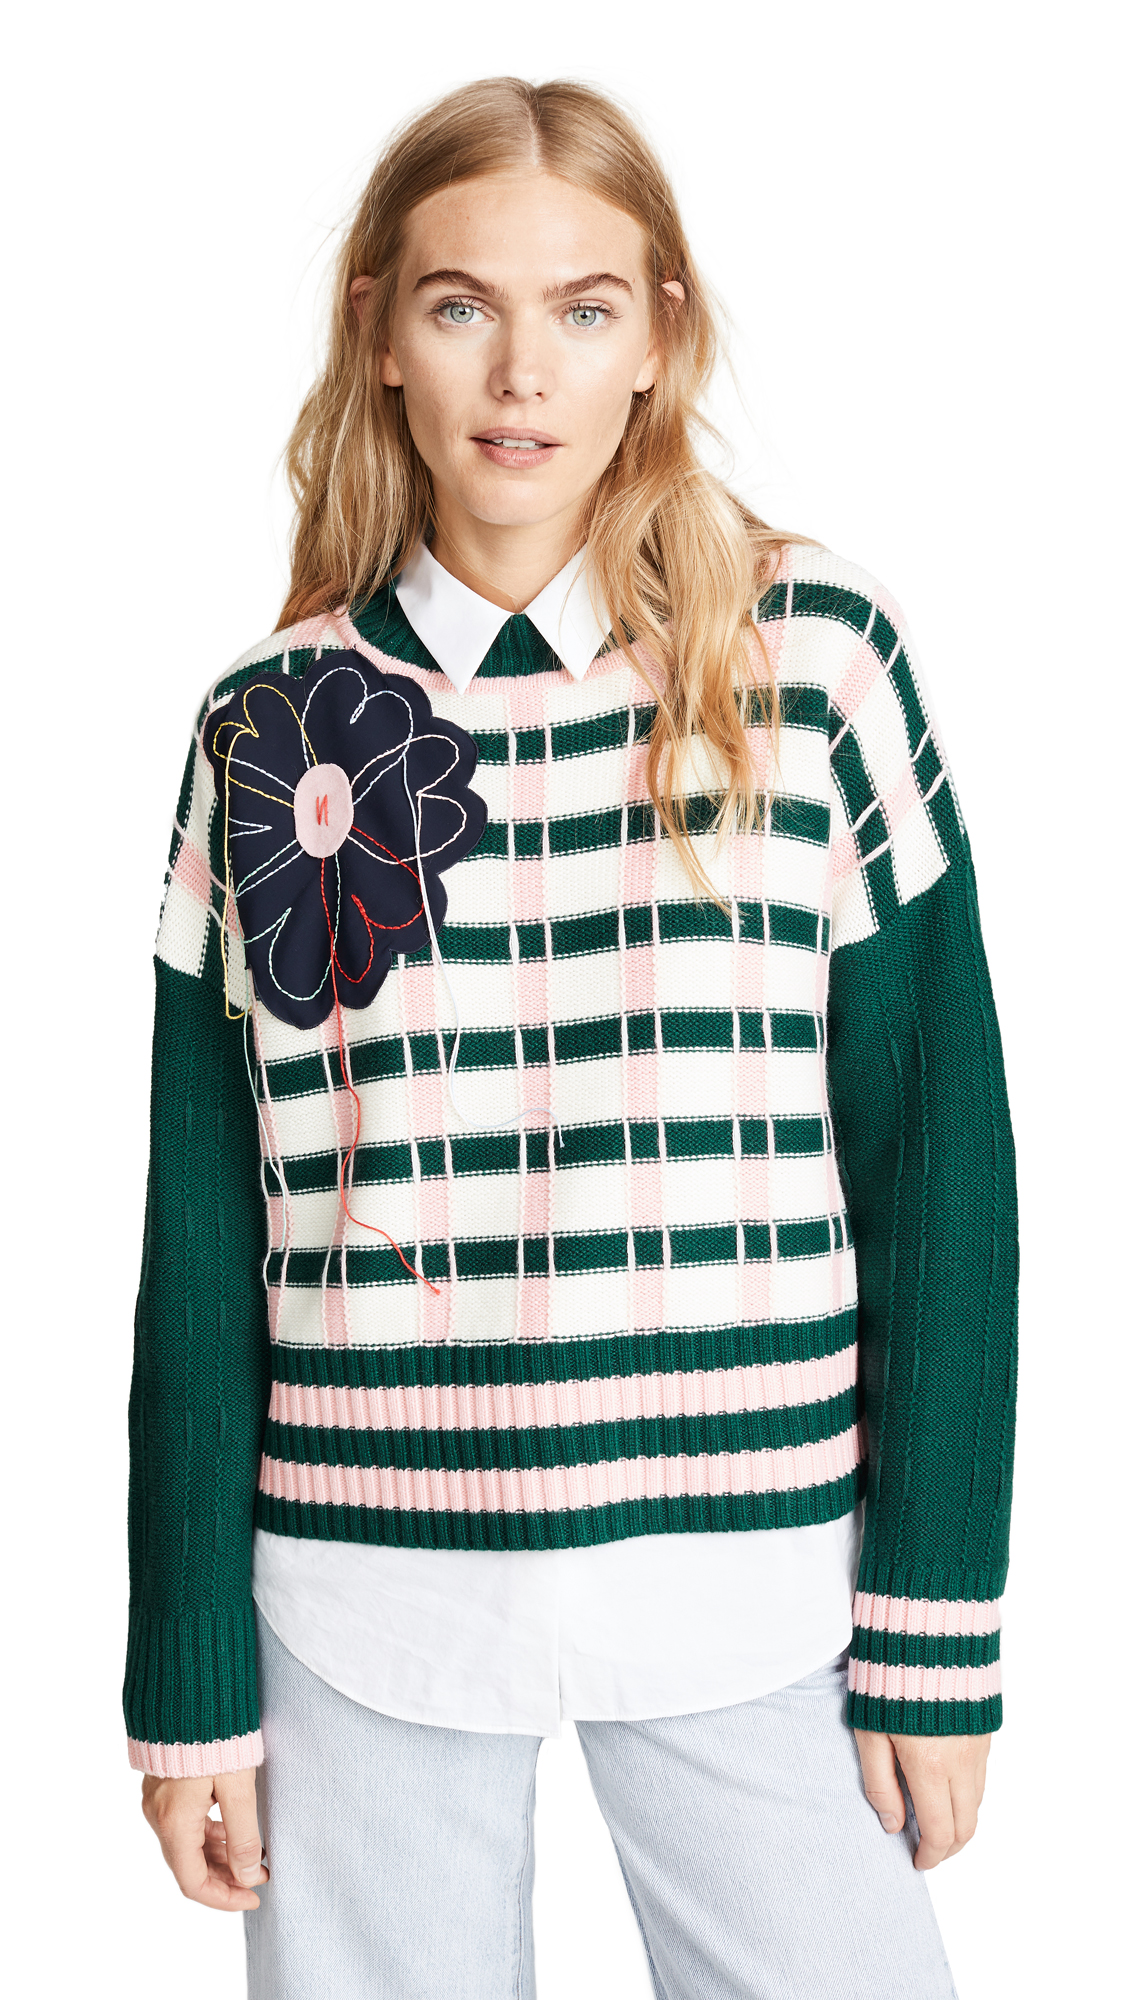 Appliqué Check Knitted Sweater in Green/Pink